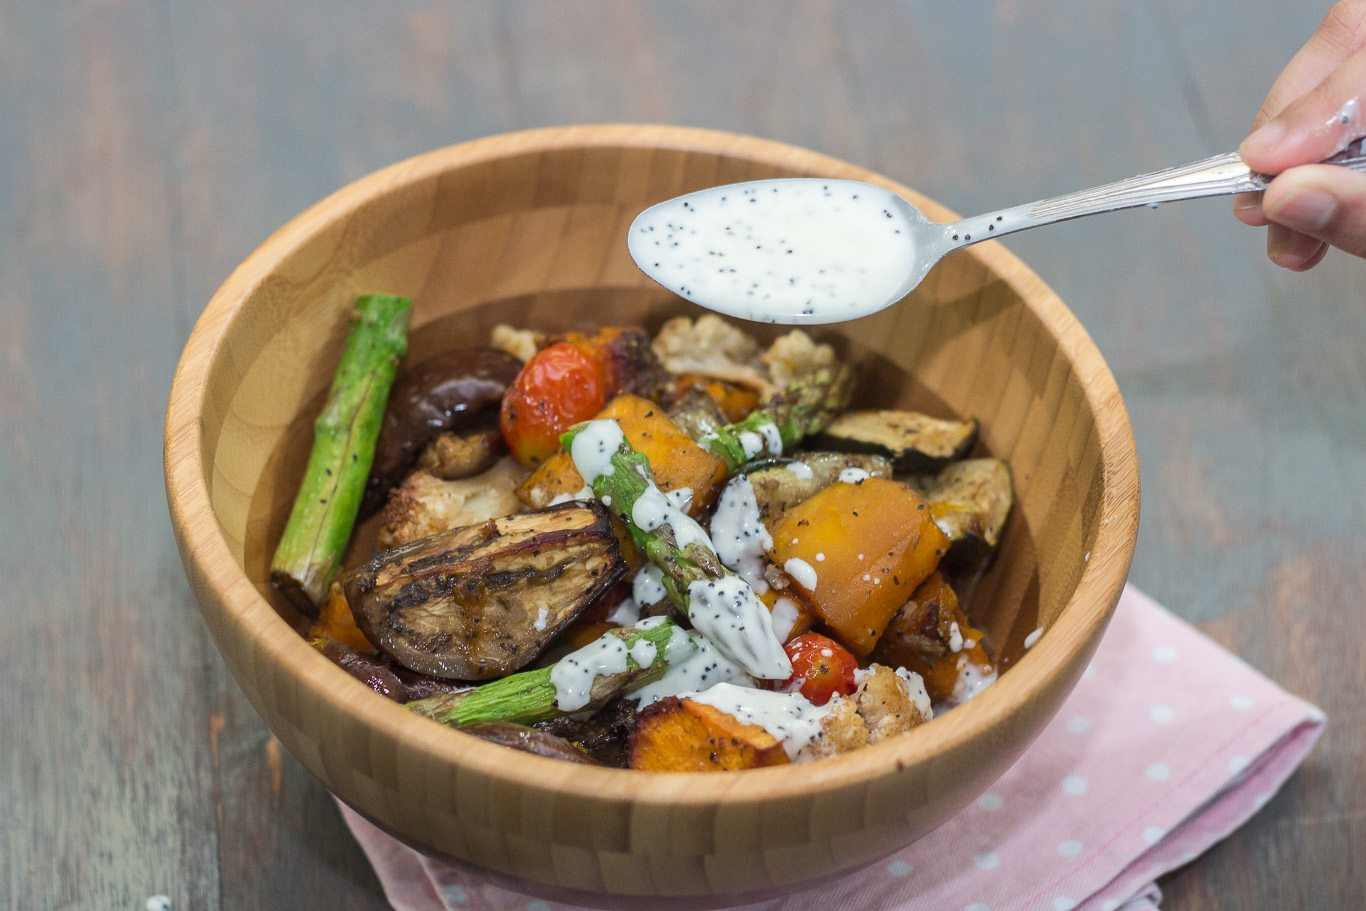 Warm Roasted Vegetable Salad